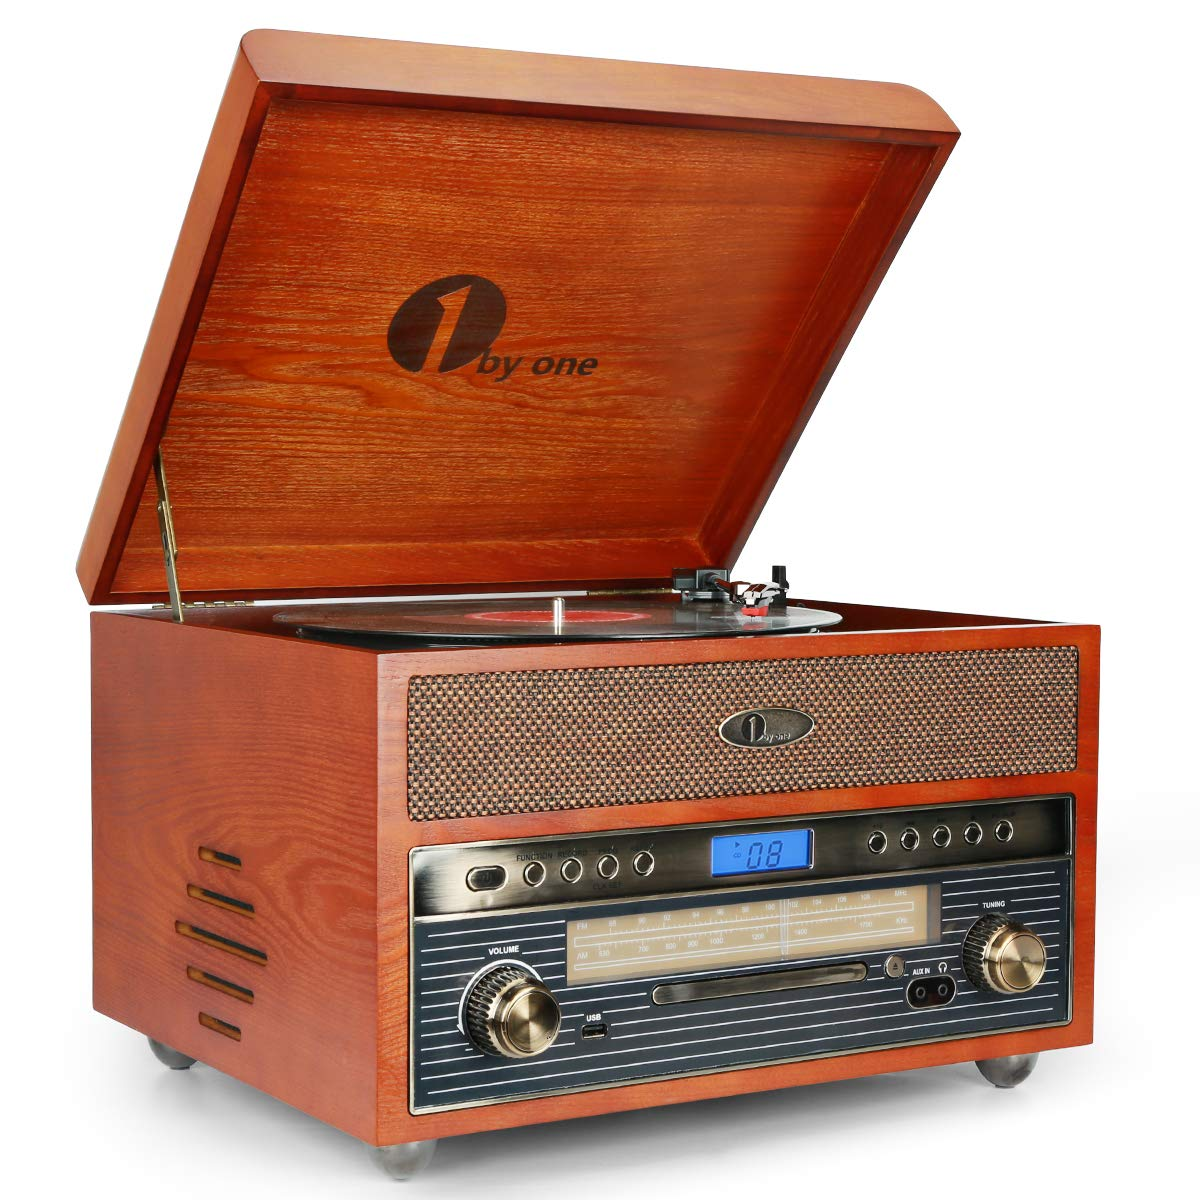 1byone Nostalgic Wooden Turntable Wireless Vinyl Record Player with AM, FM, CD, MP3 Recording to USB, AUX Input for Smartphone and Tablets, RCA Output by 1byone